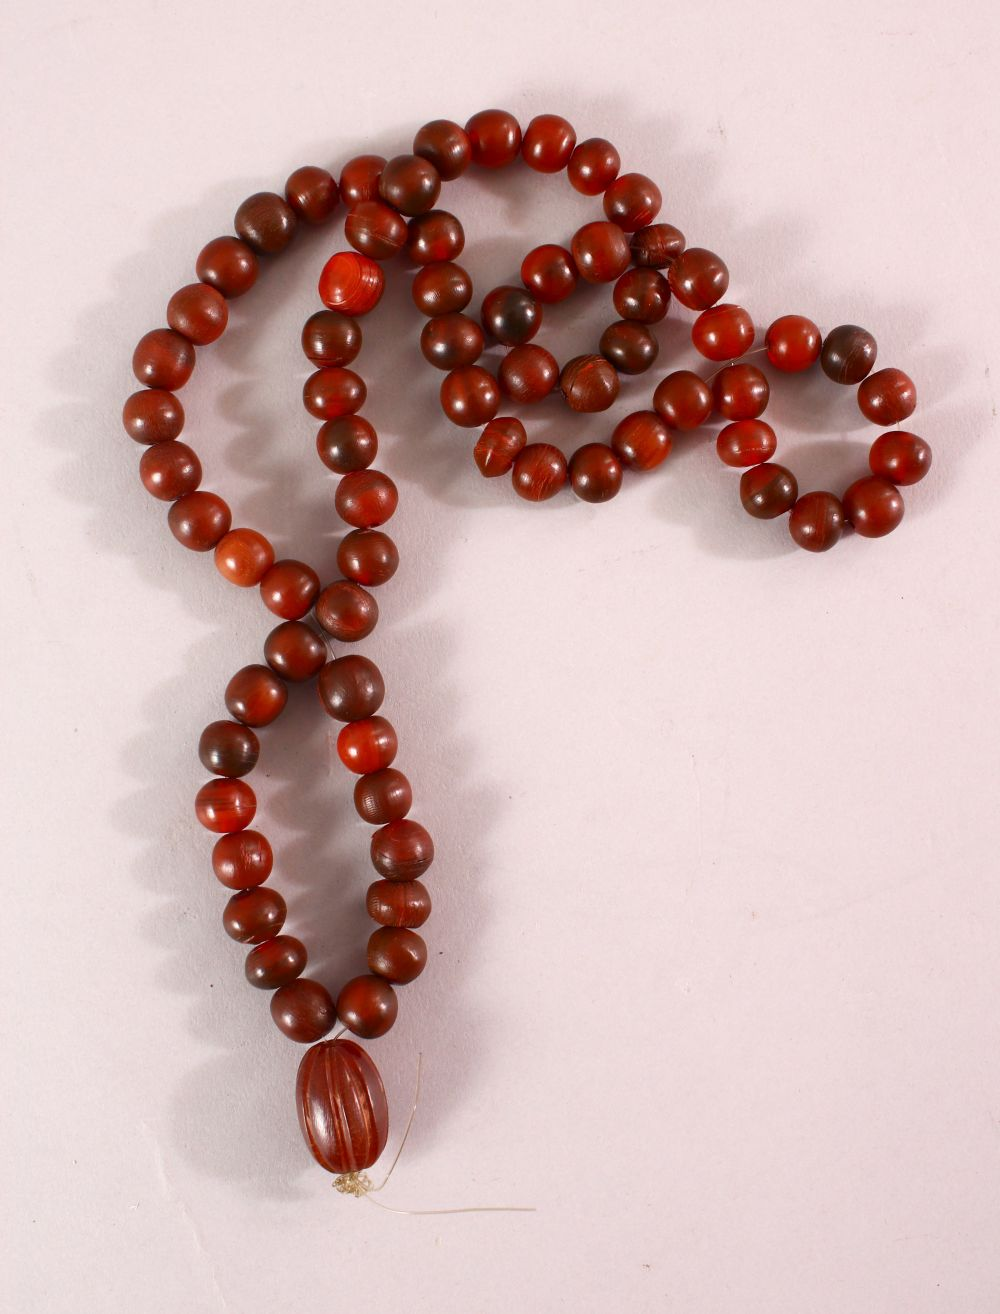 A RHINO HORN BEAD NECKLACE, beads approx 10mm diameter, weight 65g.